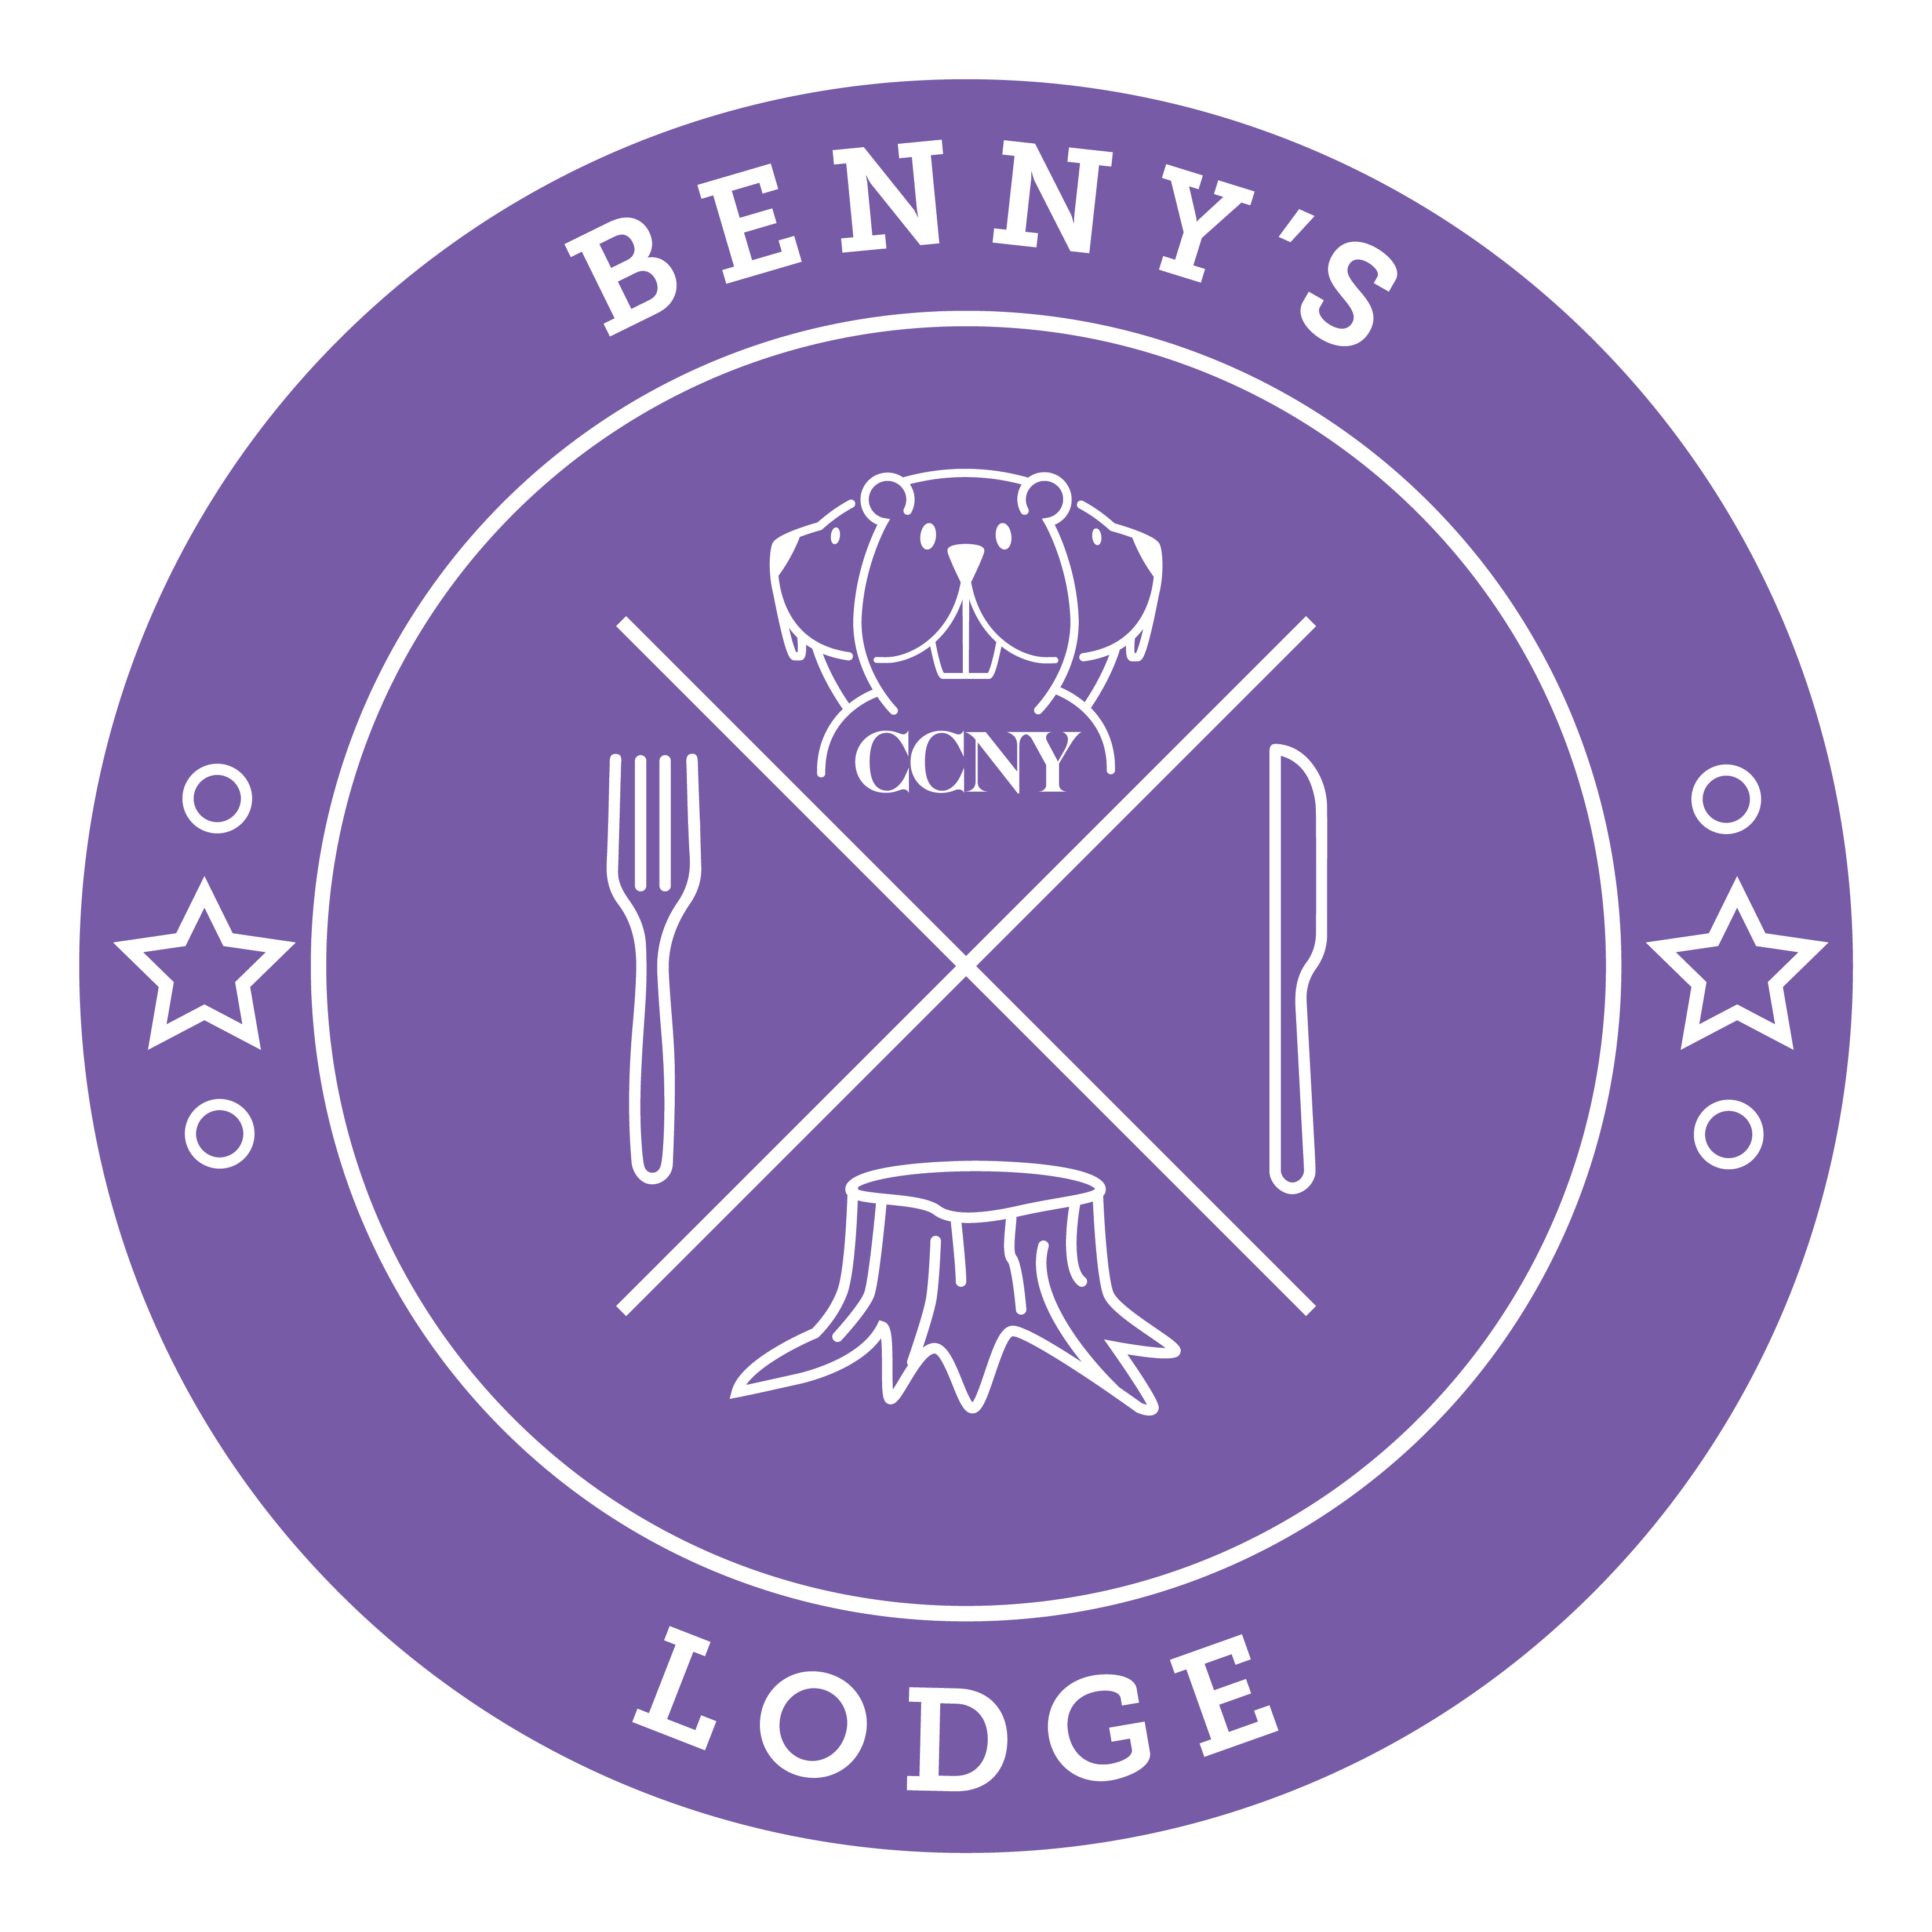 New student dining logo - Benny's lodge logo